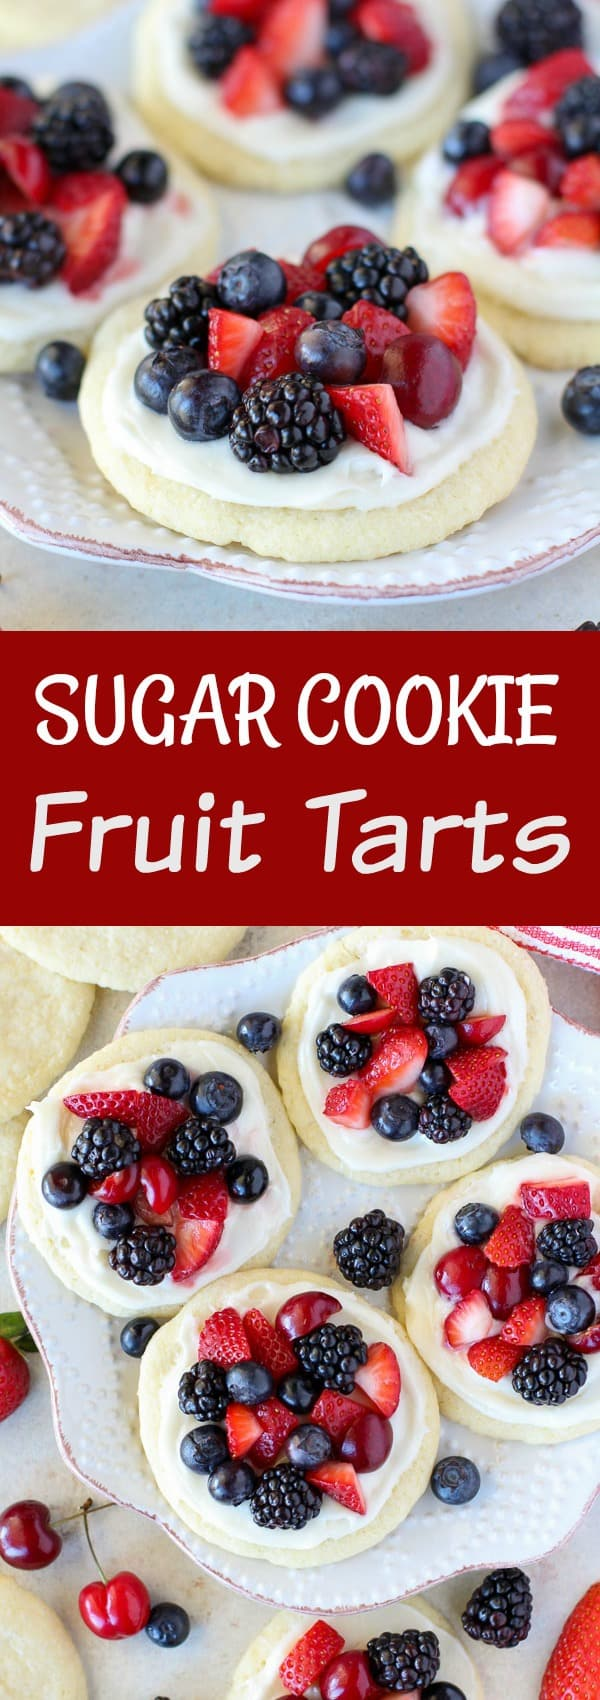 Sugar Cookie Fruit Tarts - Mini fruit tarts made with sugar cookies topped with cream cheese frosting and fresh fruit. Use your favorite fruit for this easy dessert.